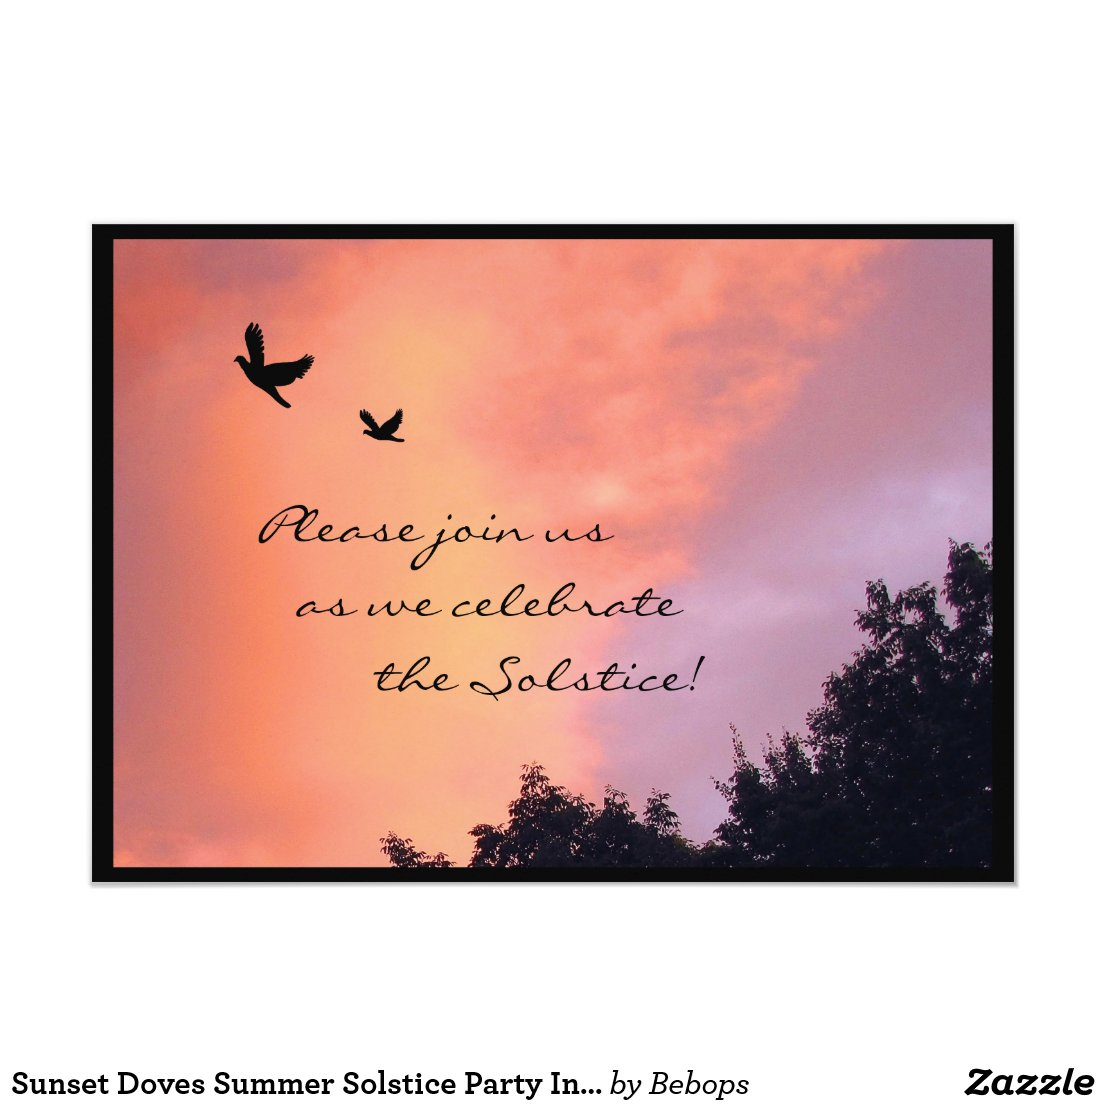 Sunset Doves Summer Solstice Party Invitation